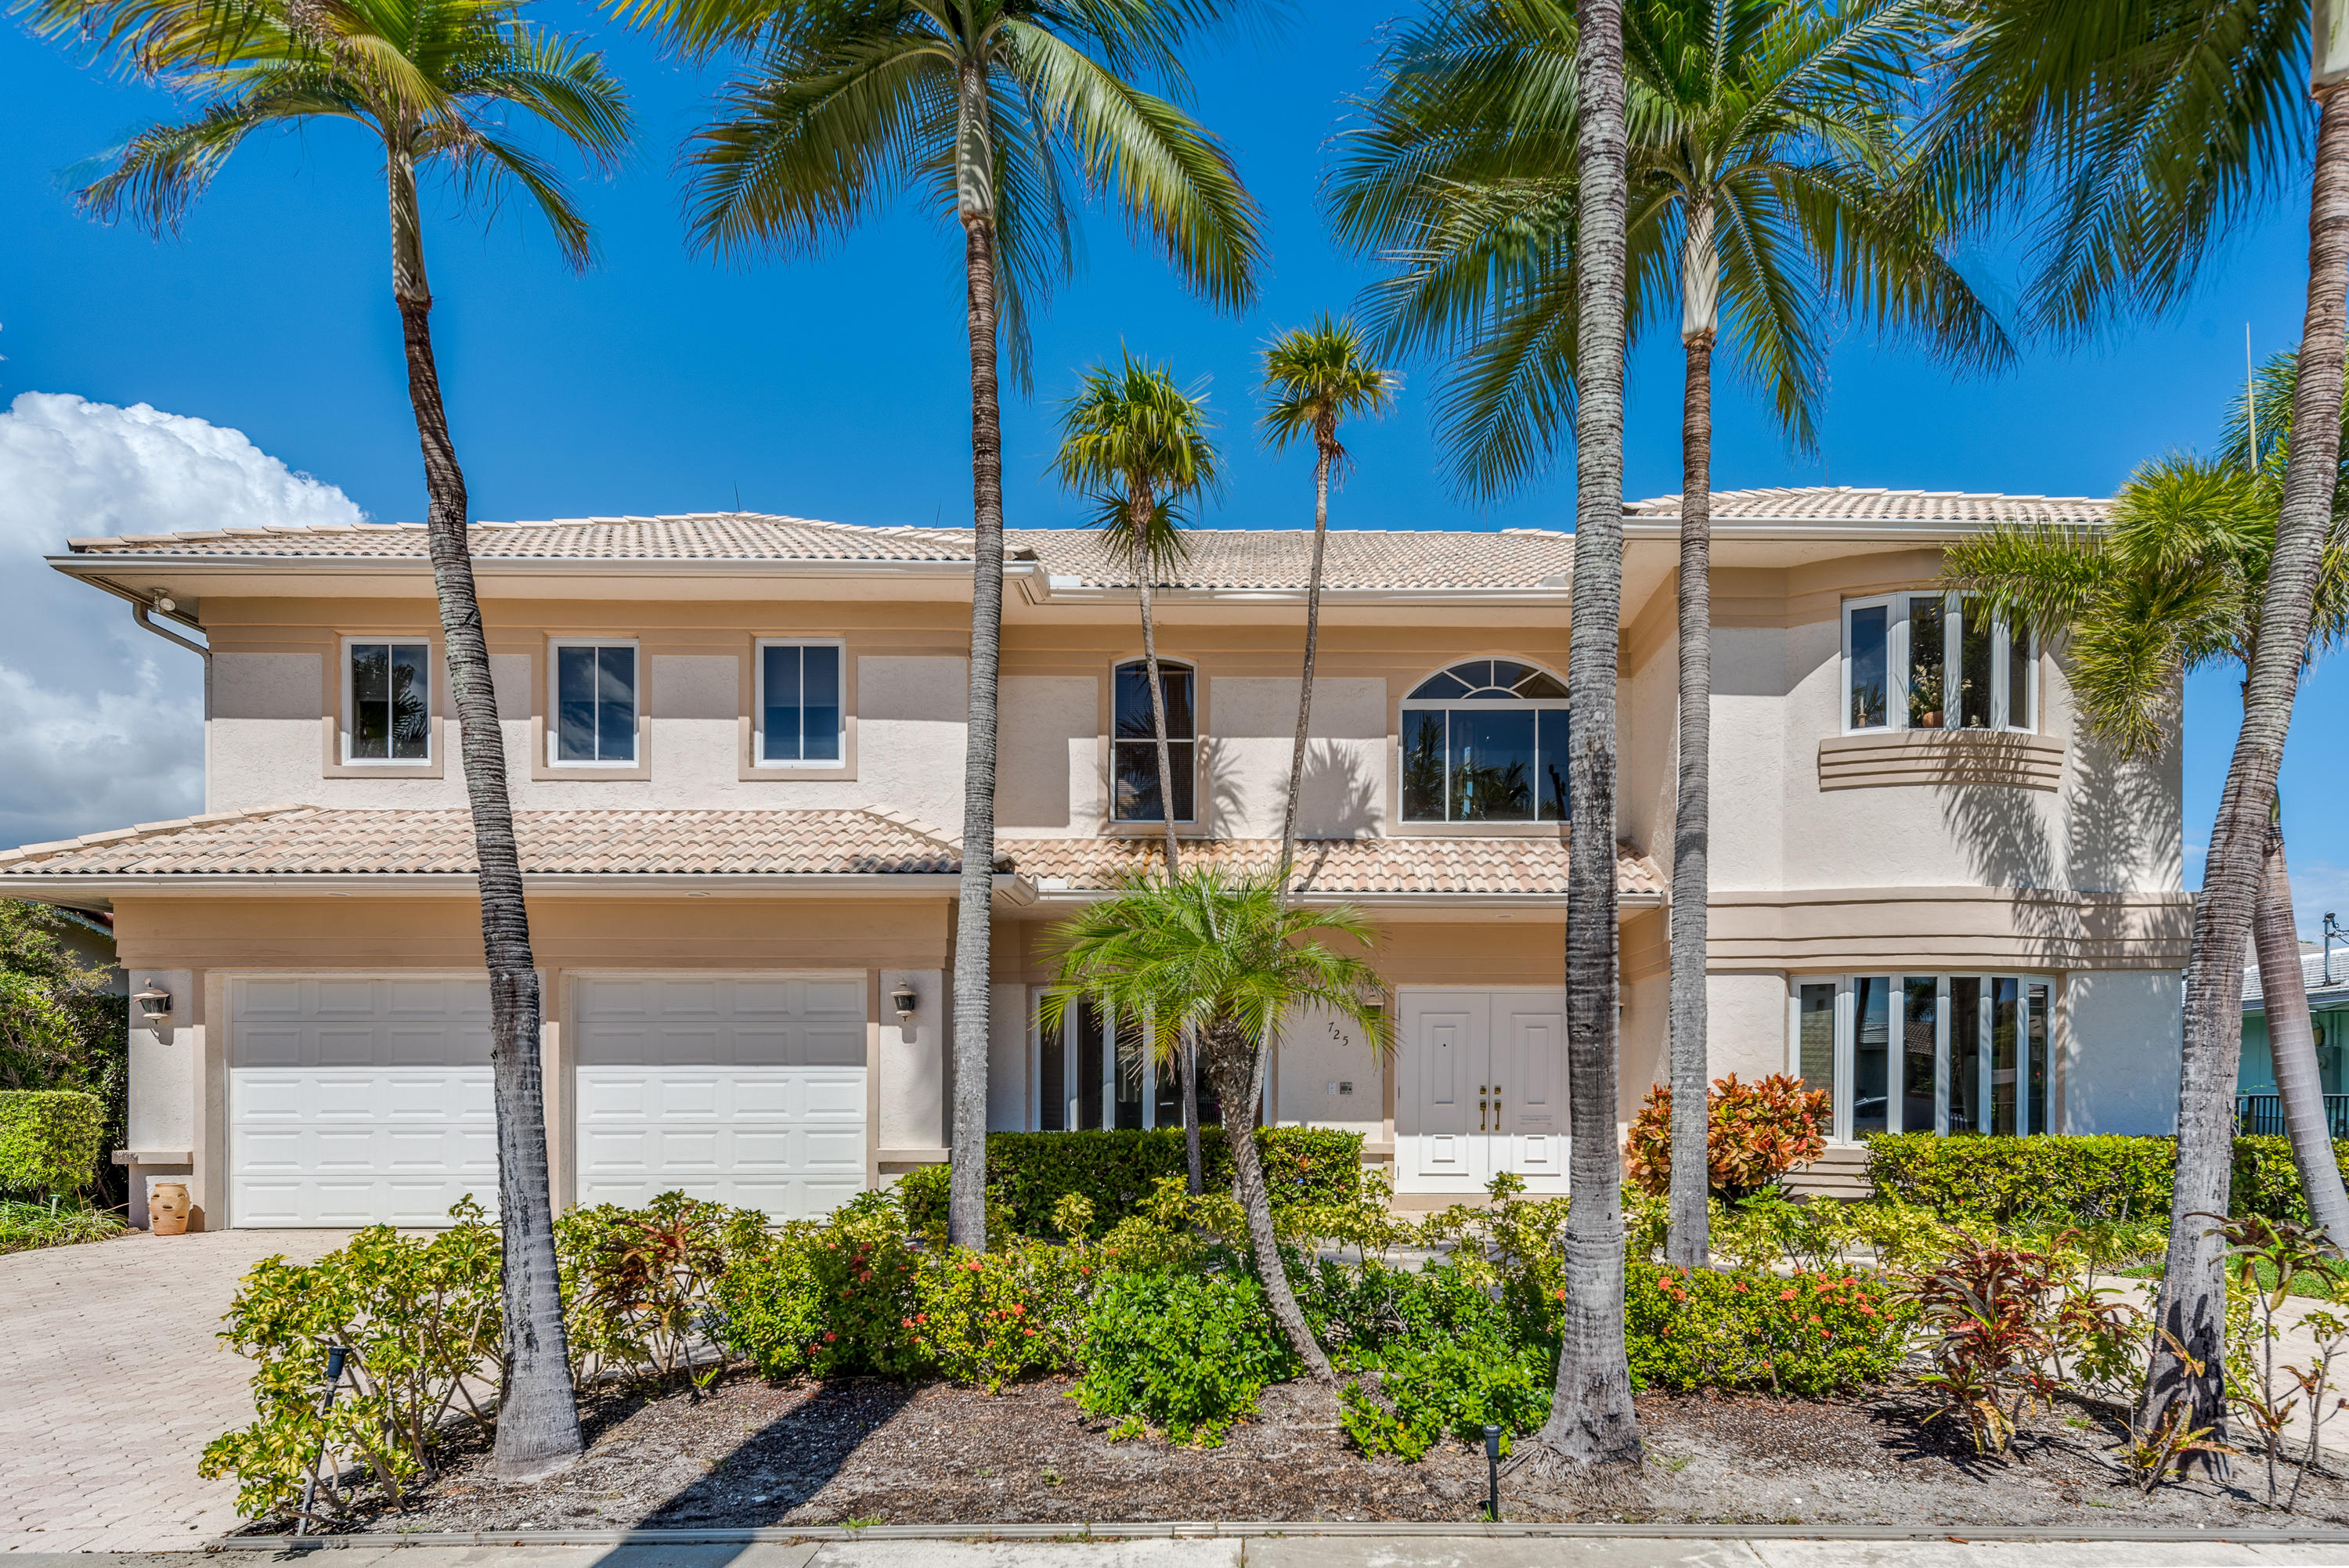 Home for sale in BOCA HARBOUR 4TH SEC Boca Raton Florida